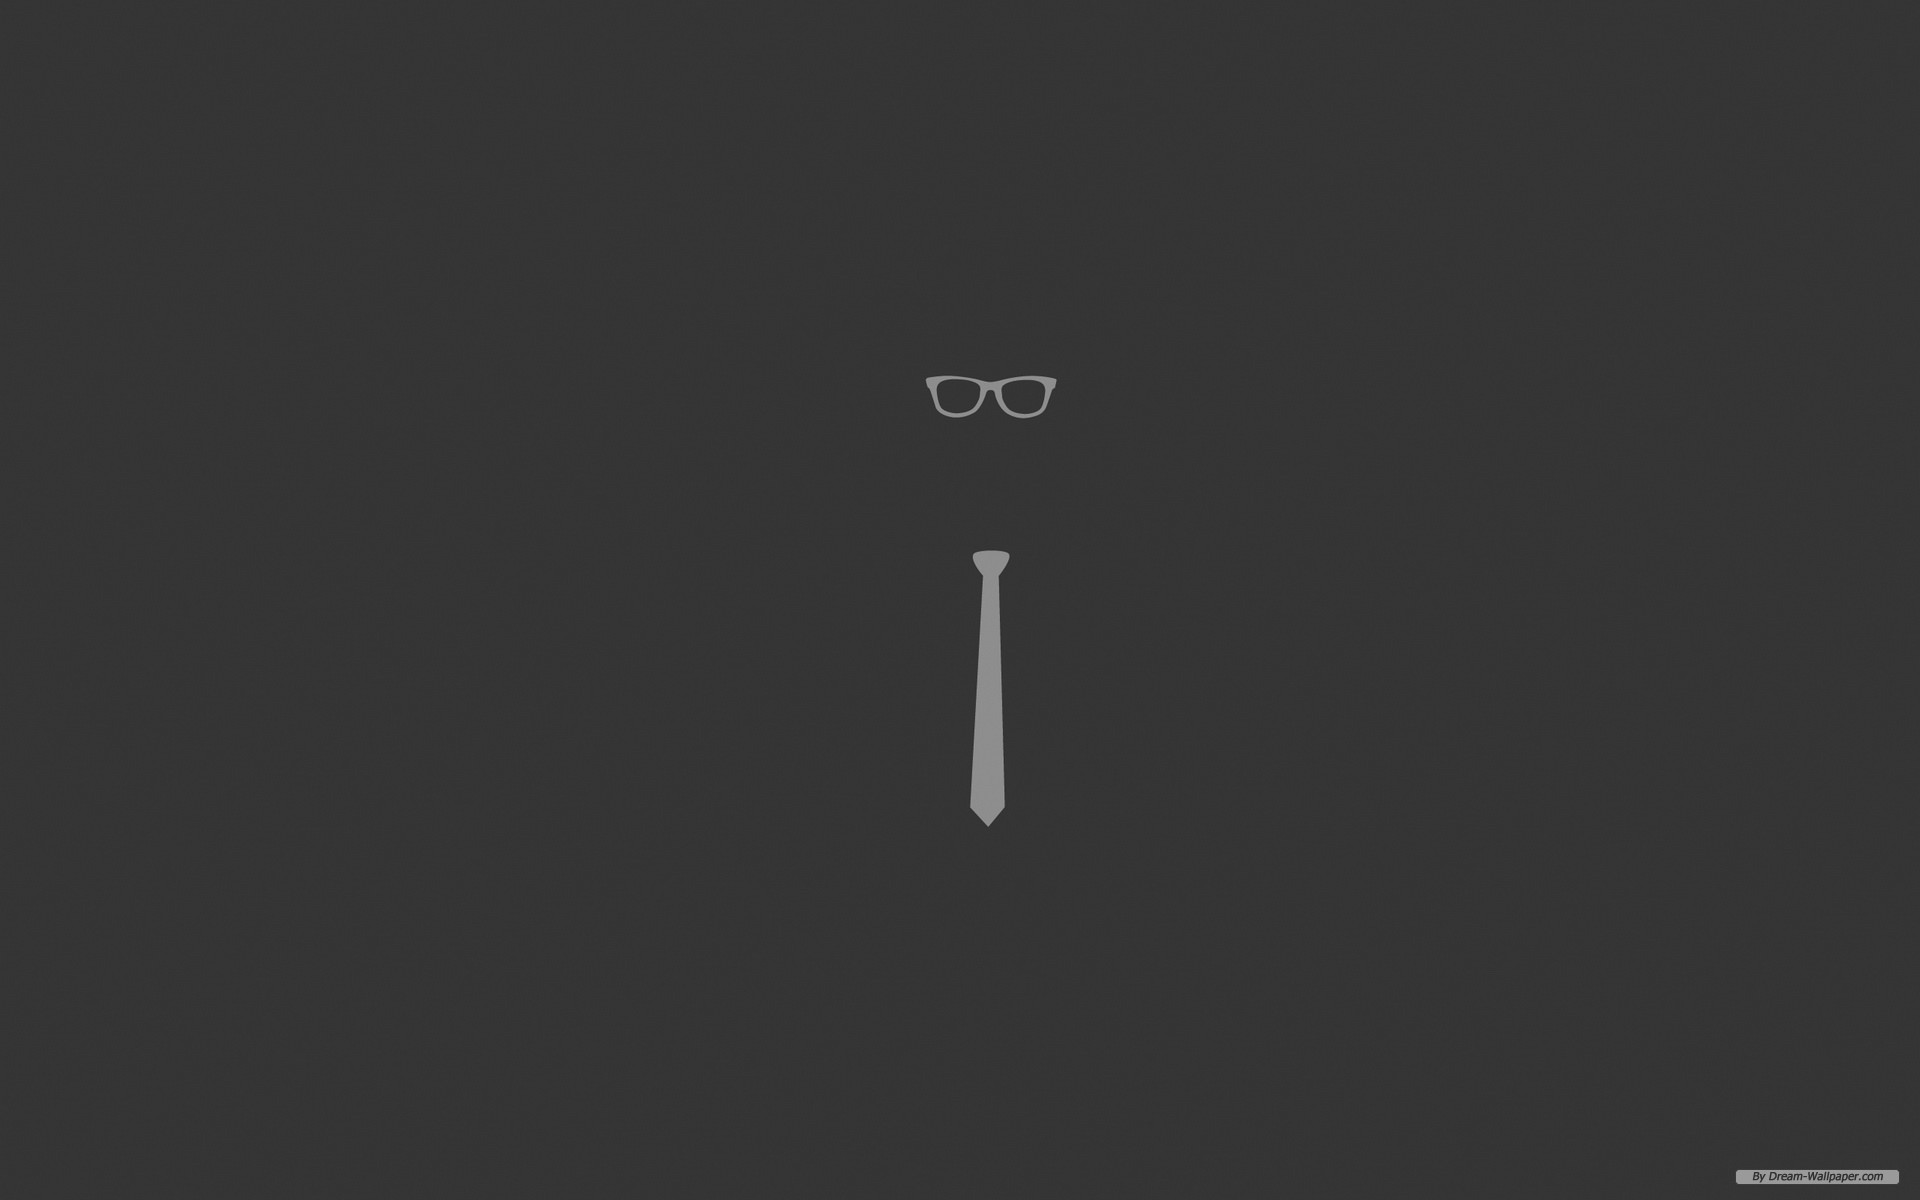 Minimalist art wallpaper wallpapersafari for Minimalist art design